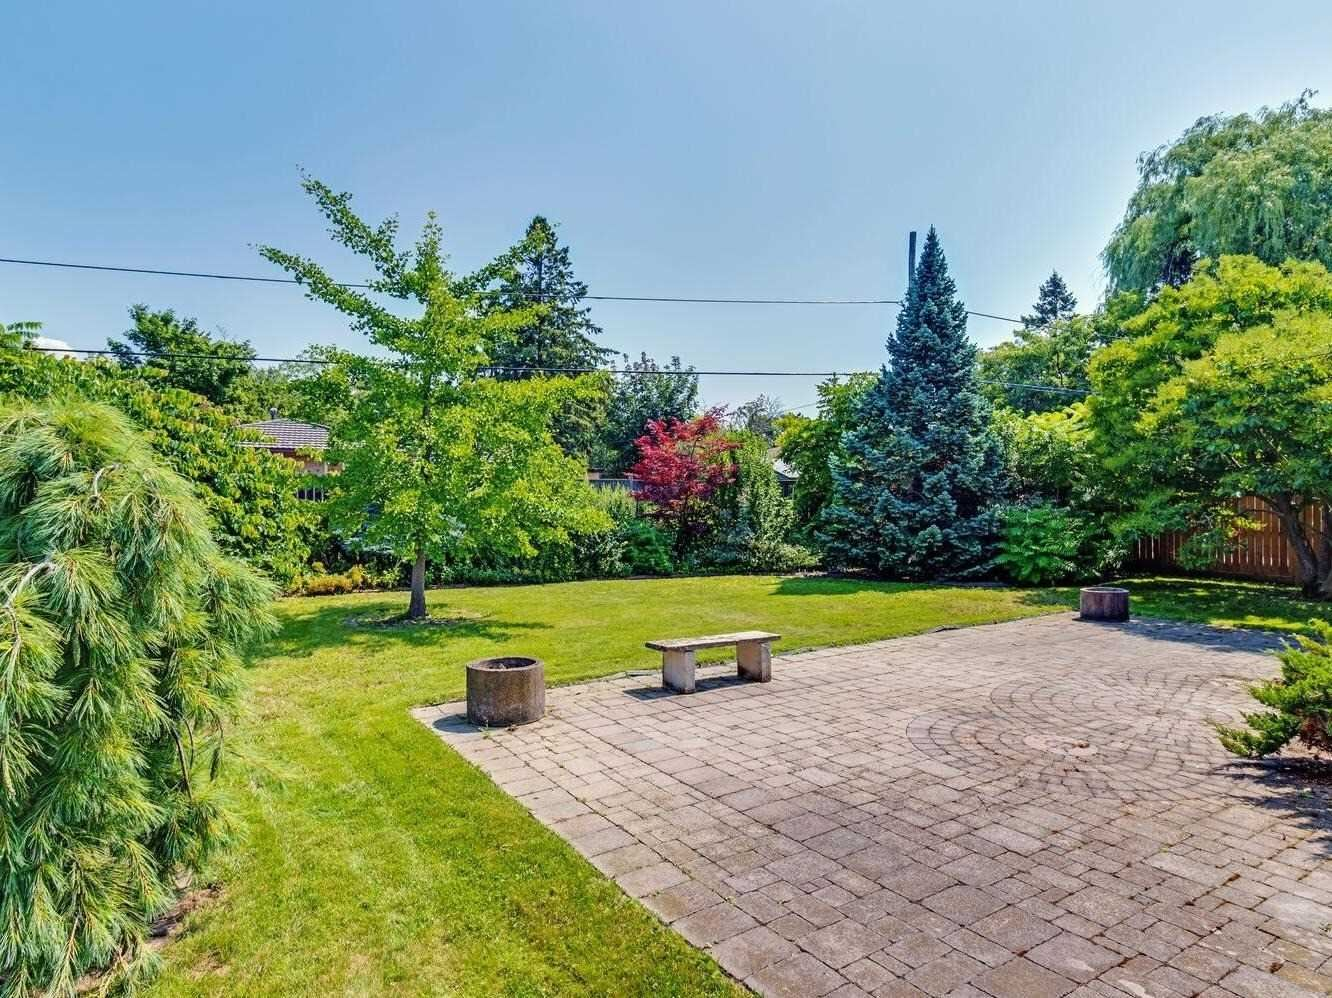 Photo of 23 Crawford Dr, Ajax, ON L1S3A9 (MLS # E5324081)